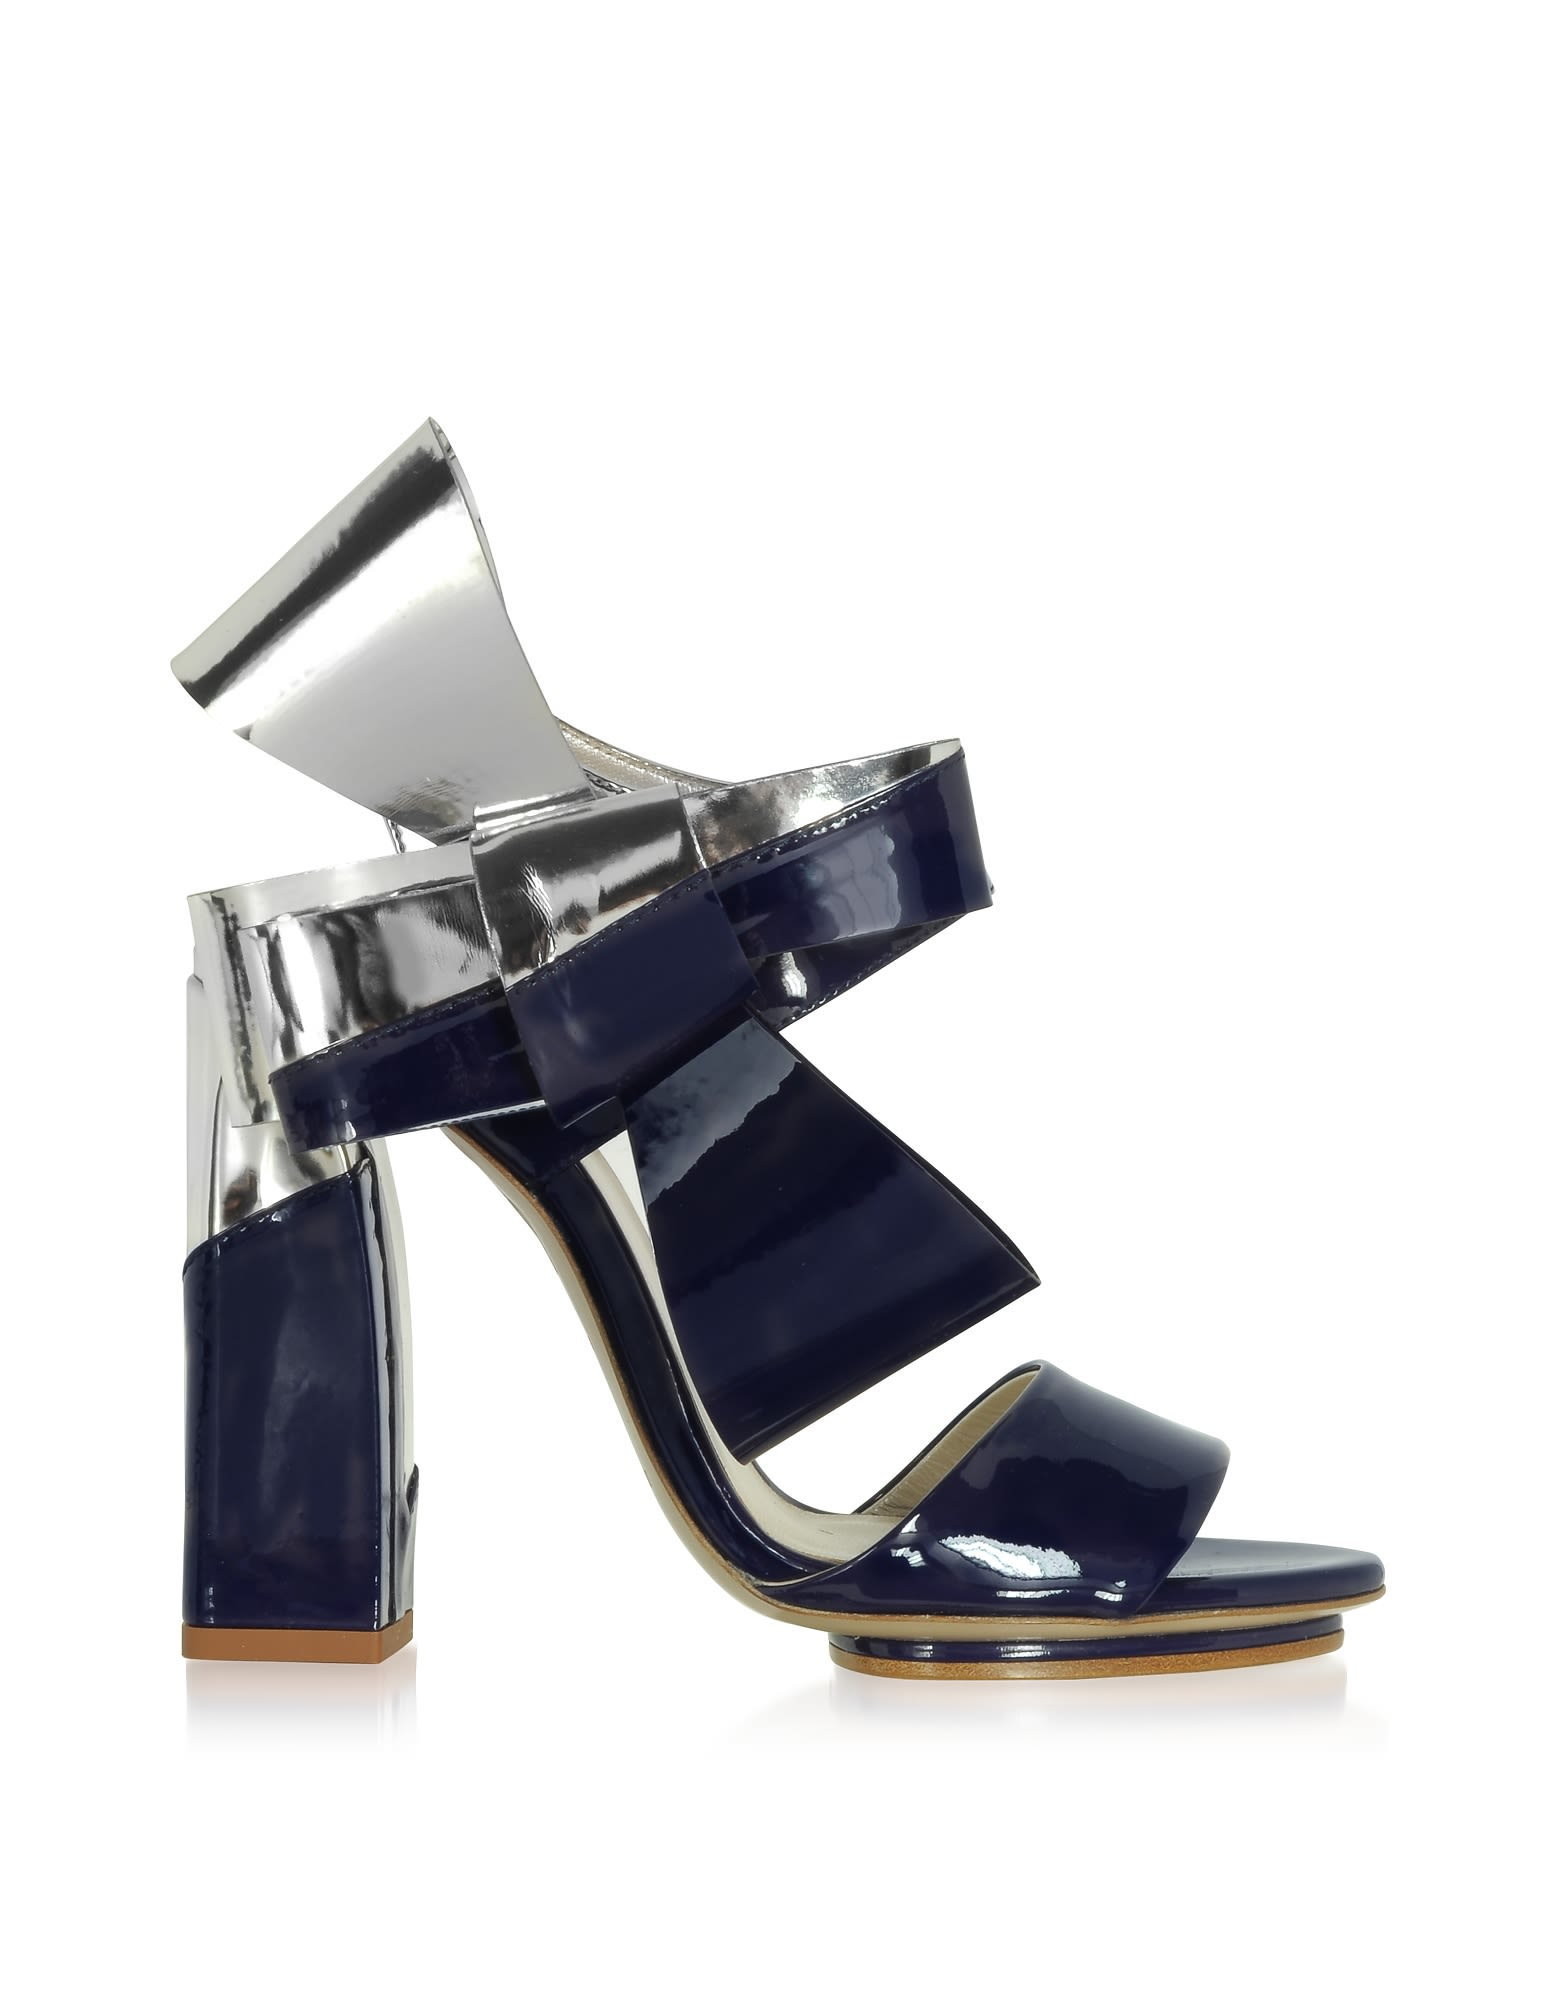 Delpozo Silver And Navy Blue Patent Leather Bow Sandals